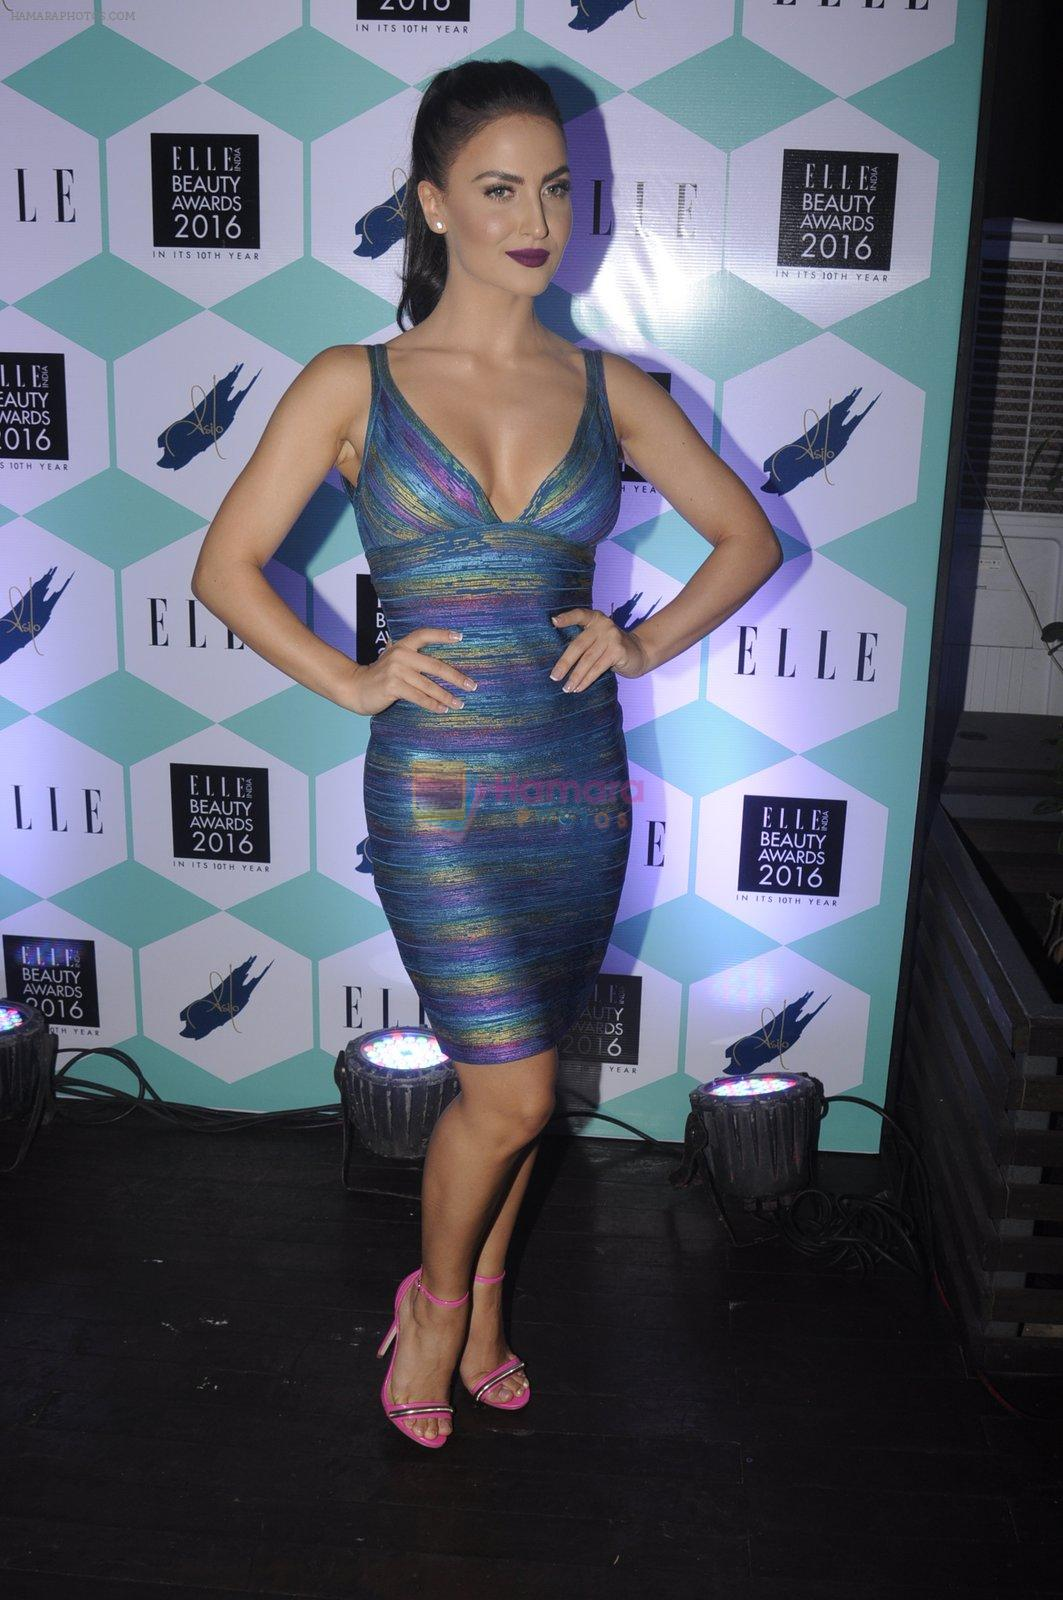 Elli Avram at Elle Beauty Awards on 5th Oct 2016